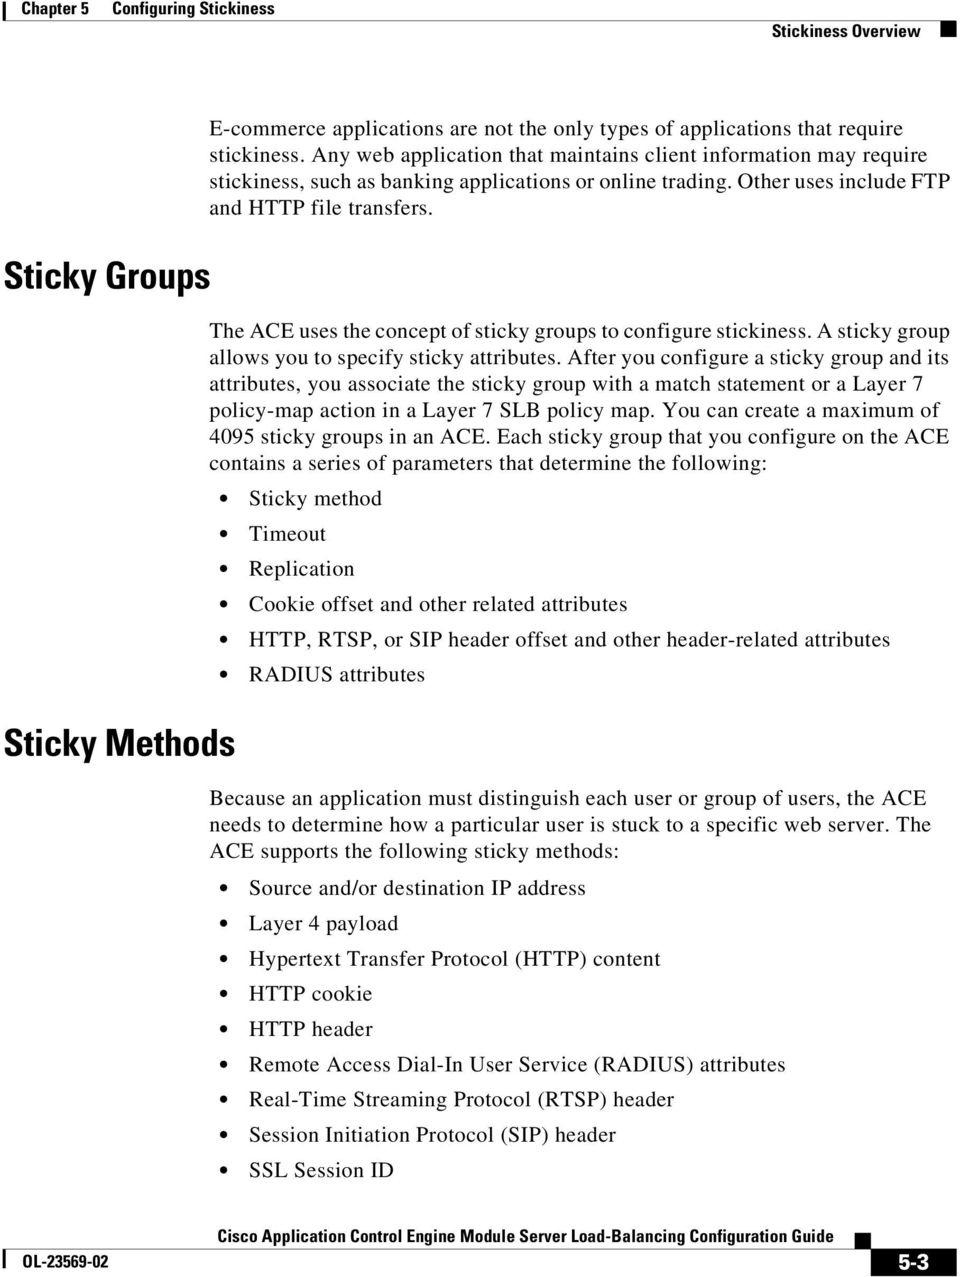 The ACE uses the concept of sticky groups to configure stickiness. A sticky group allows you to specify sticky attributes.